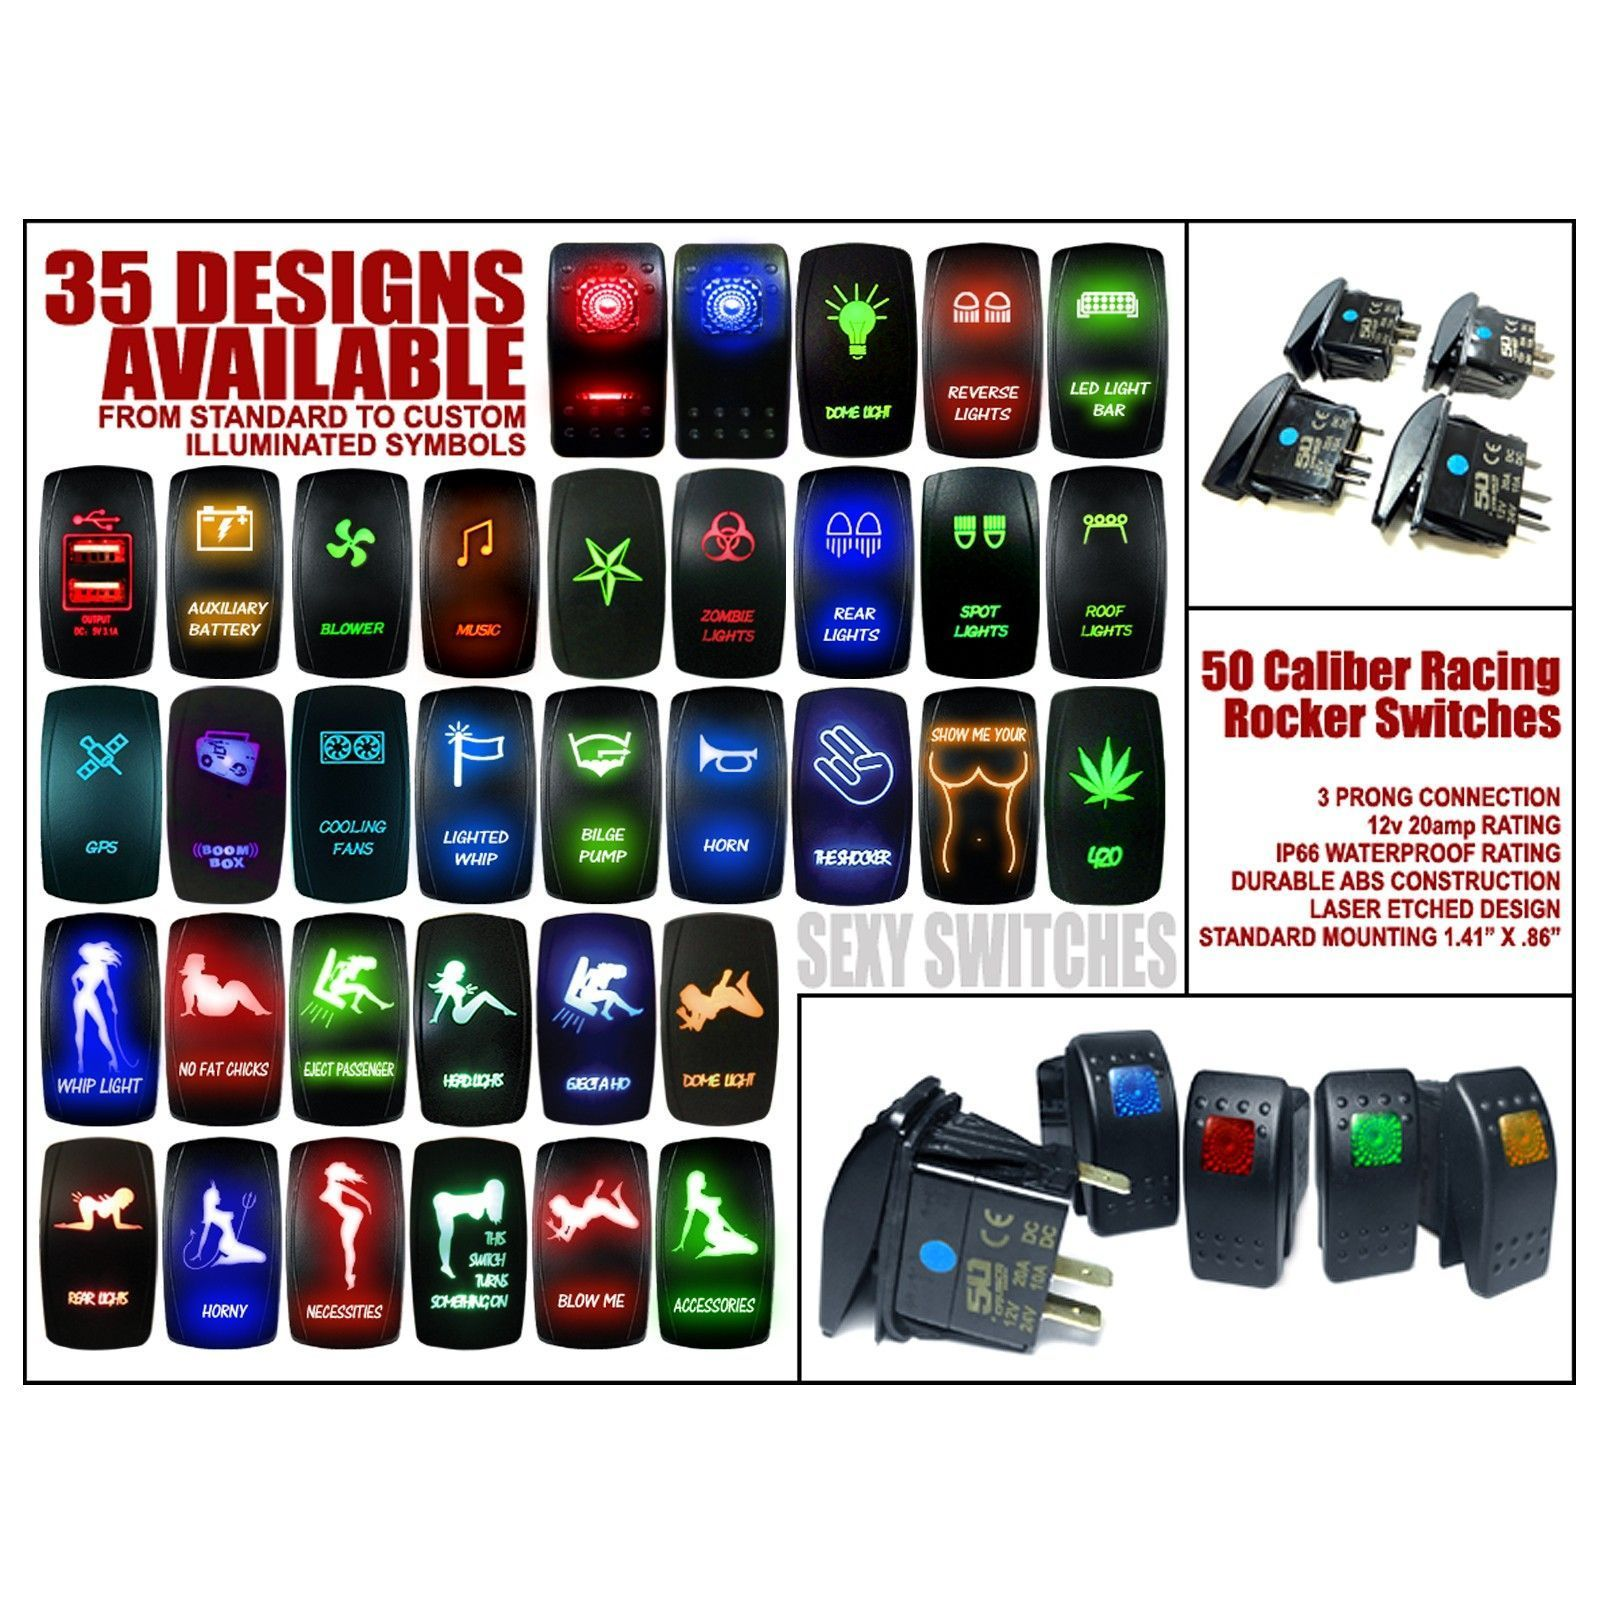 hight resolution of  rocker 12v automotive rocker switch carling etched y girl led whip light on rocker light switch cover whip lights rocker switch wiring diagram